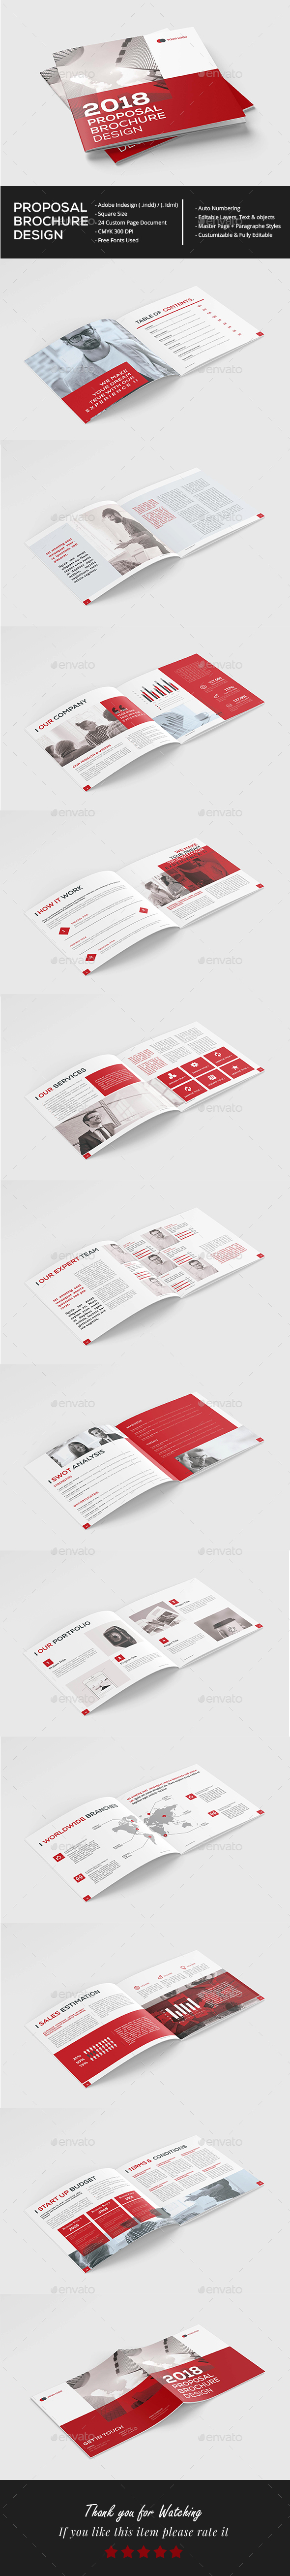 Square Proposal Brochure - Brochures Print Templates